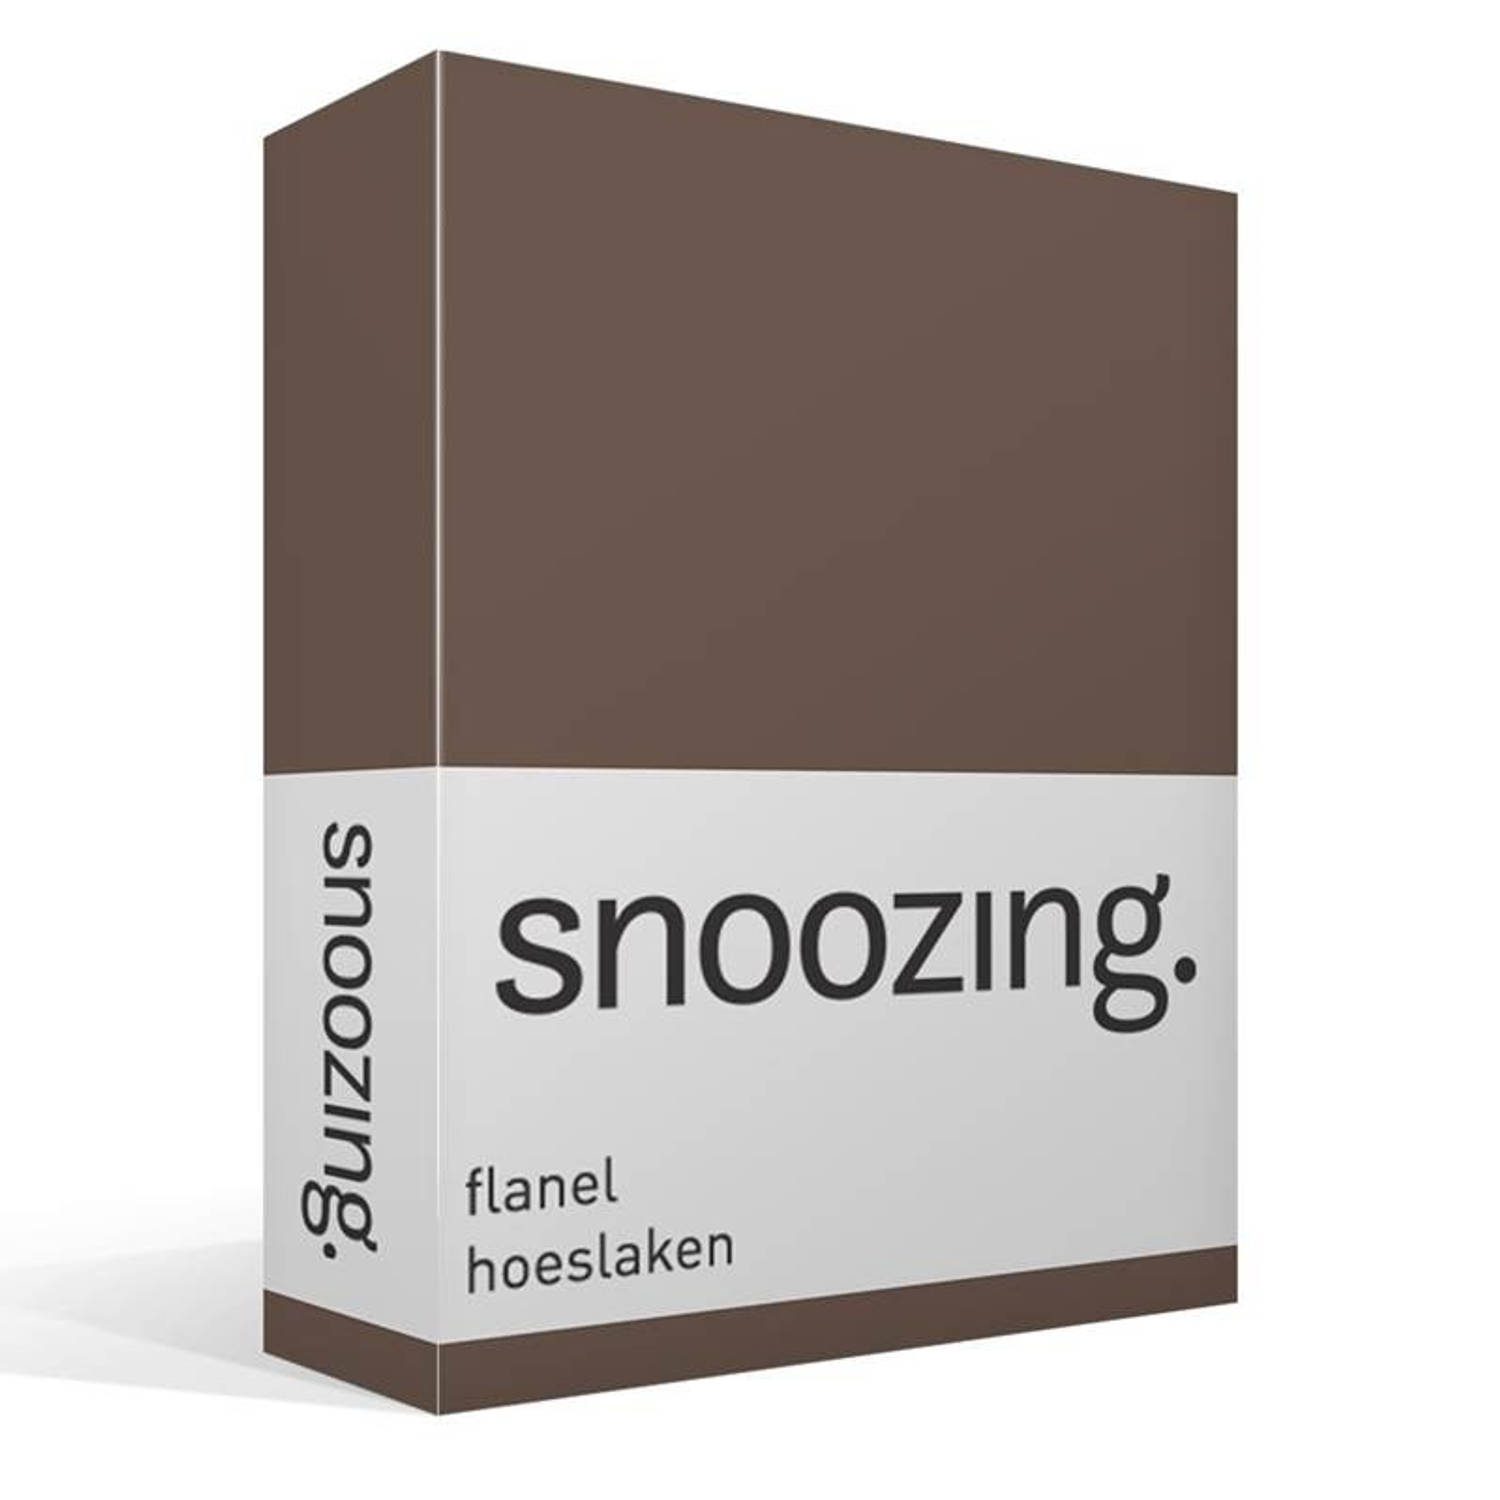 Snoozing flanel hoeslaken - 100% geruwde flanel-katoen - 1-persoons (90/100x220 cm) - Taupe